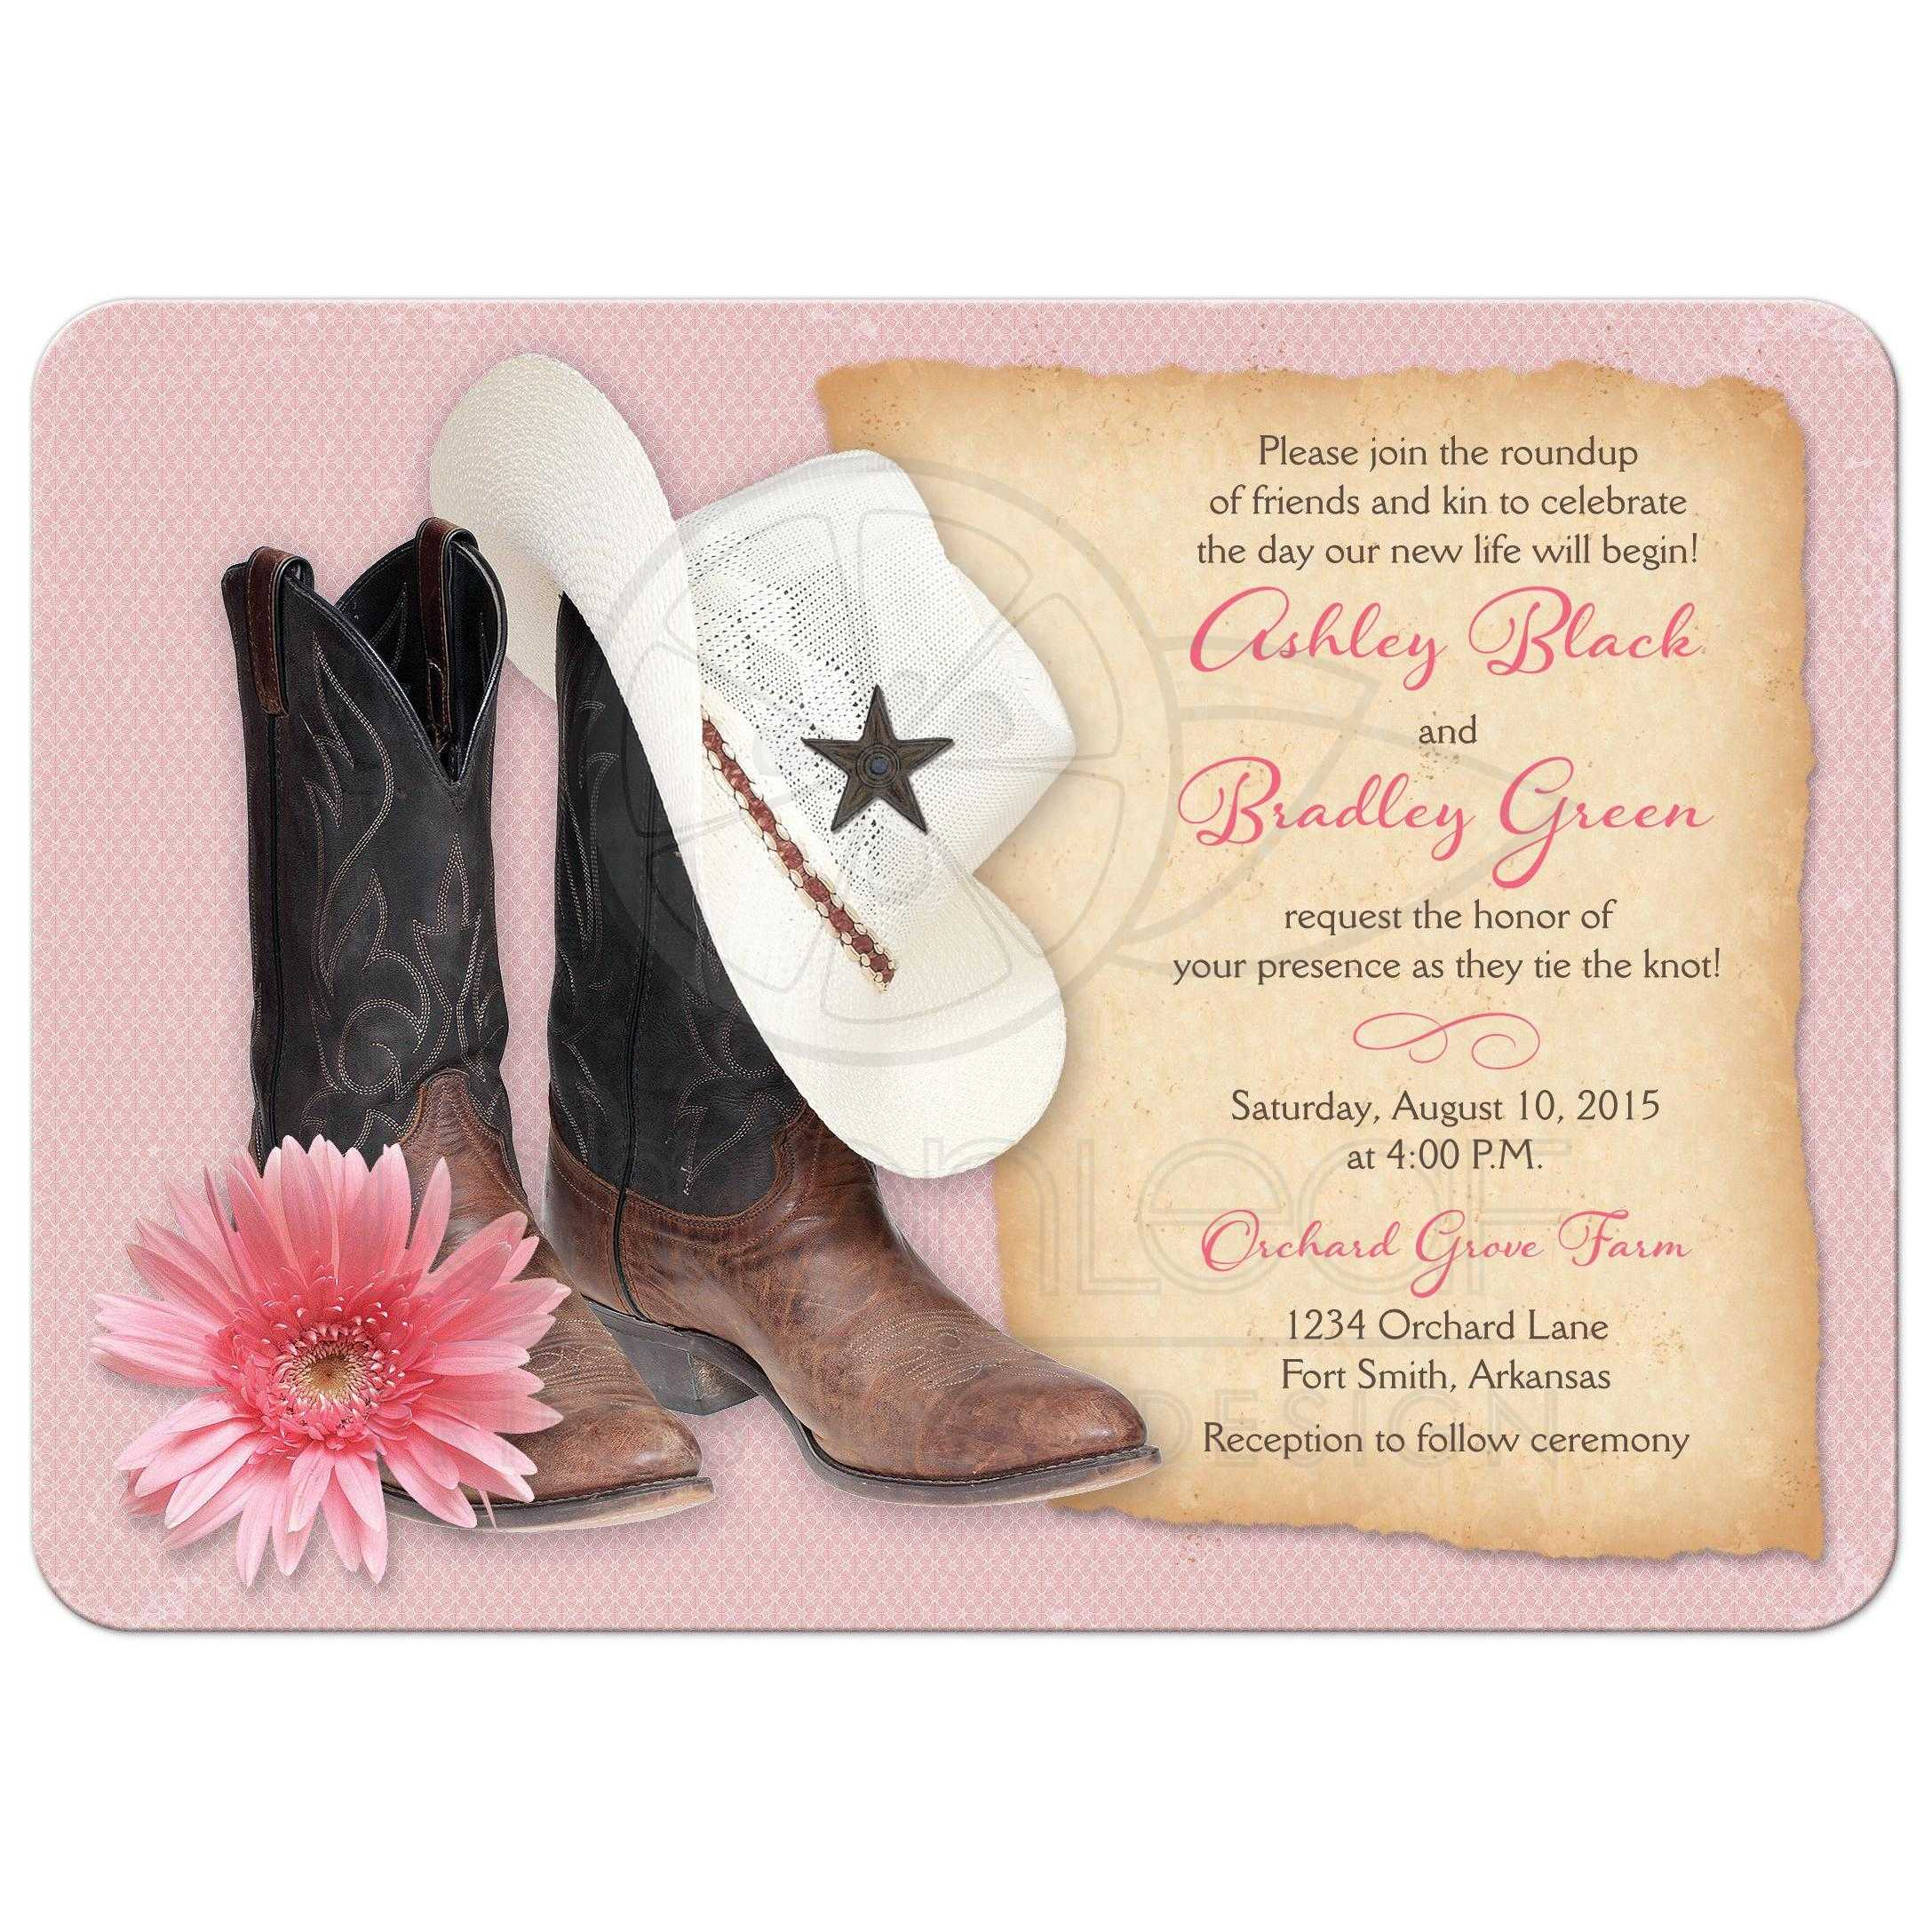 Cowboy Cowgirl Wedding Ideas: Western Wedding Invitations Cowboy Boots Hat Pink Daisy